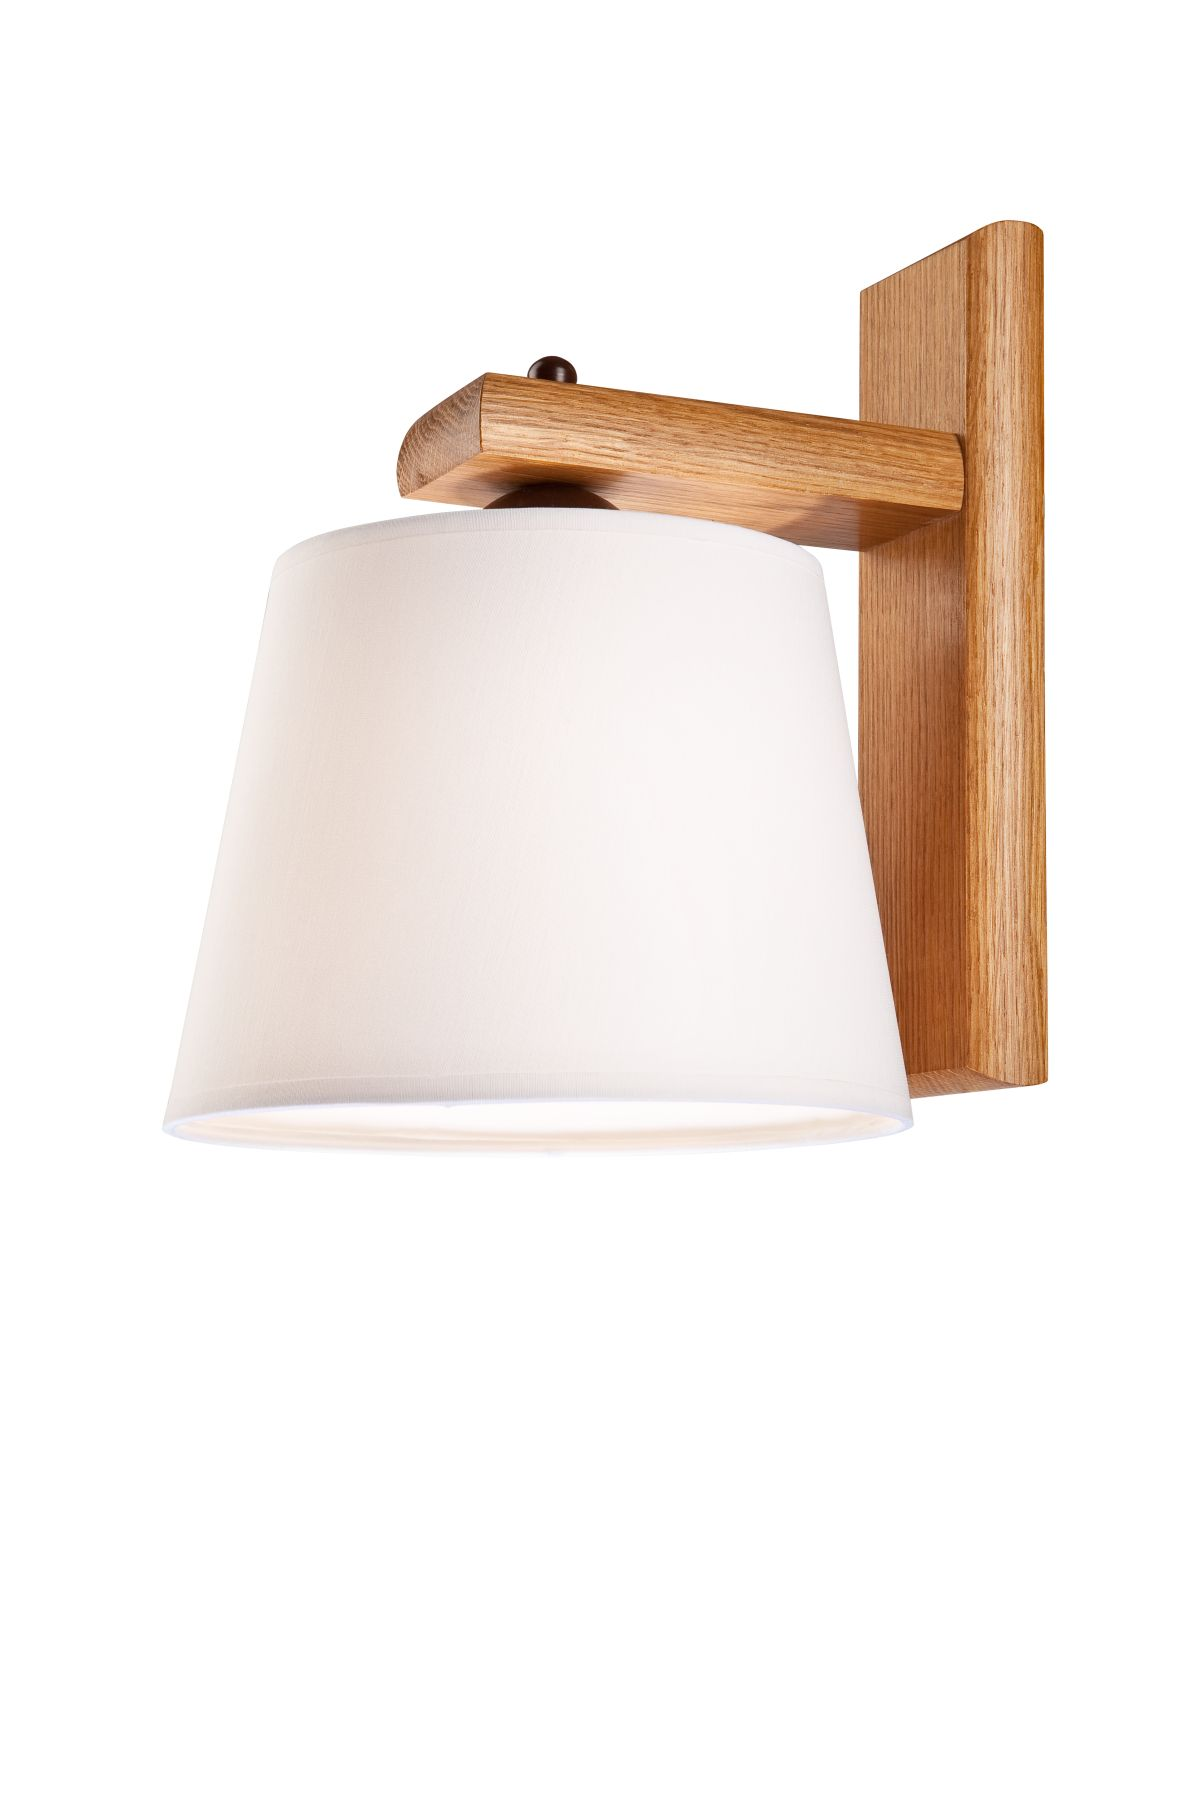 wandleuchte holz stoff schirm beverely wand lampe